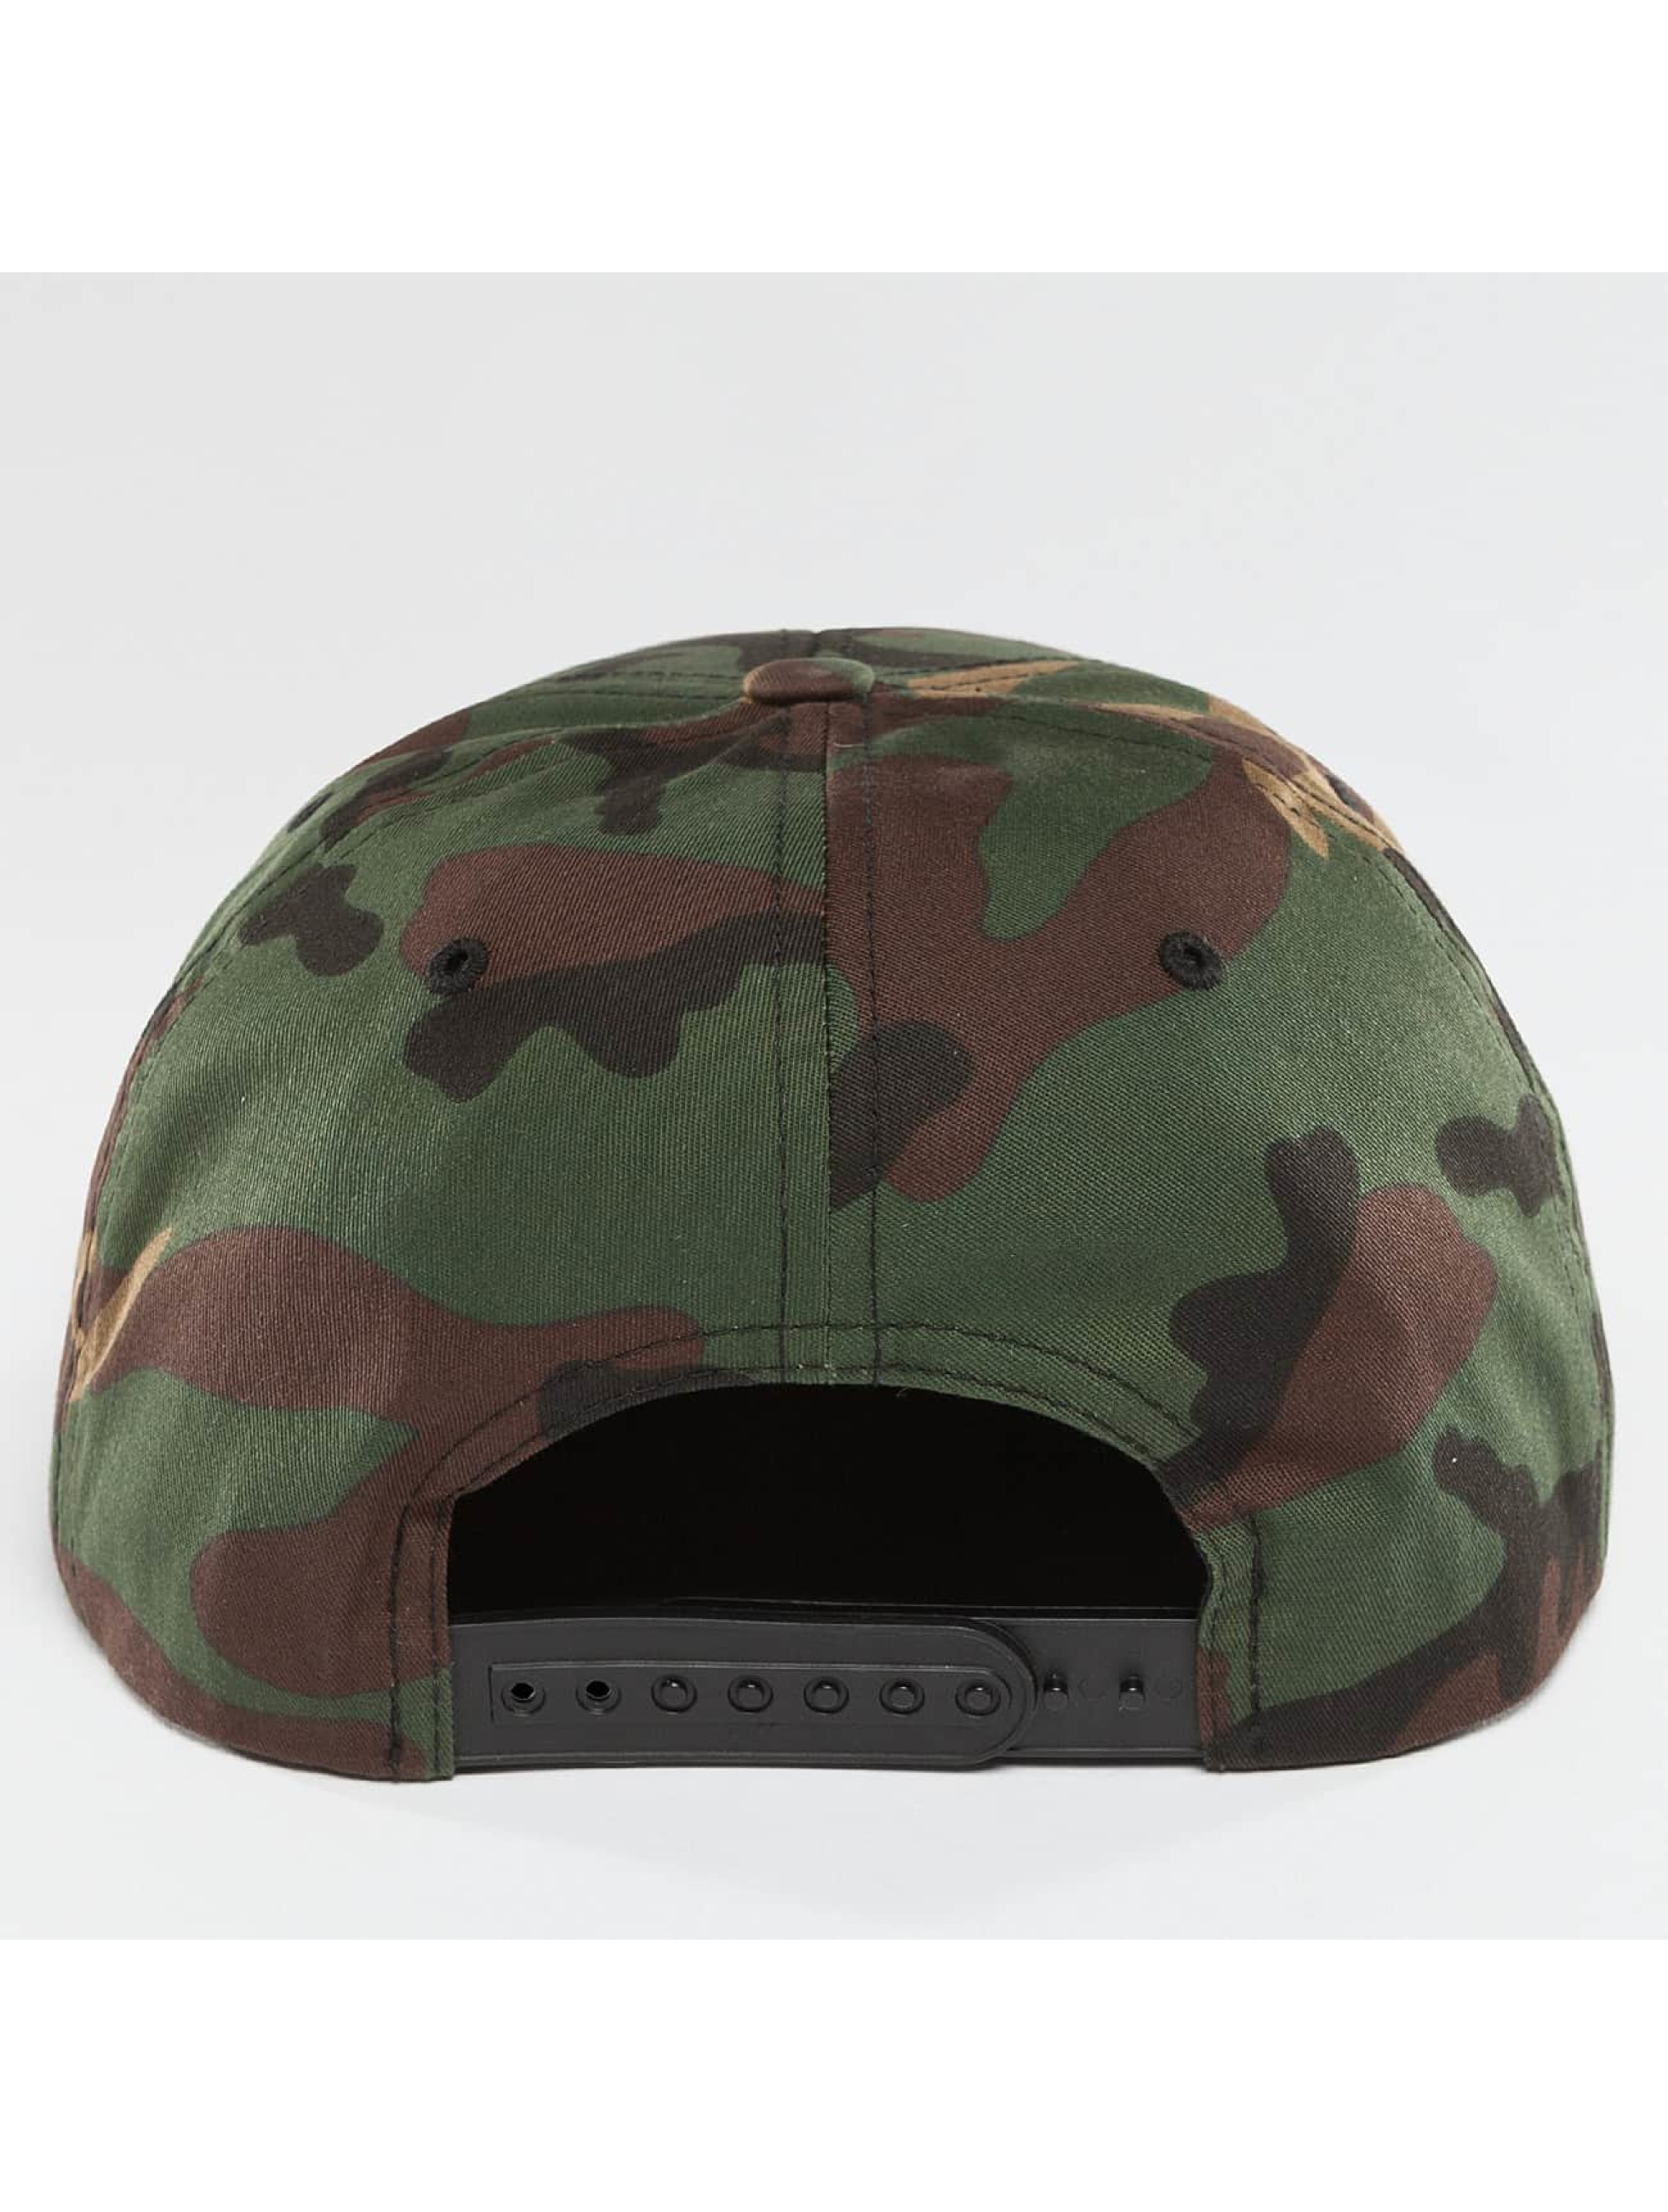 Wu-Tang Casquette Snapback & Strapback American camouflage